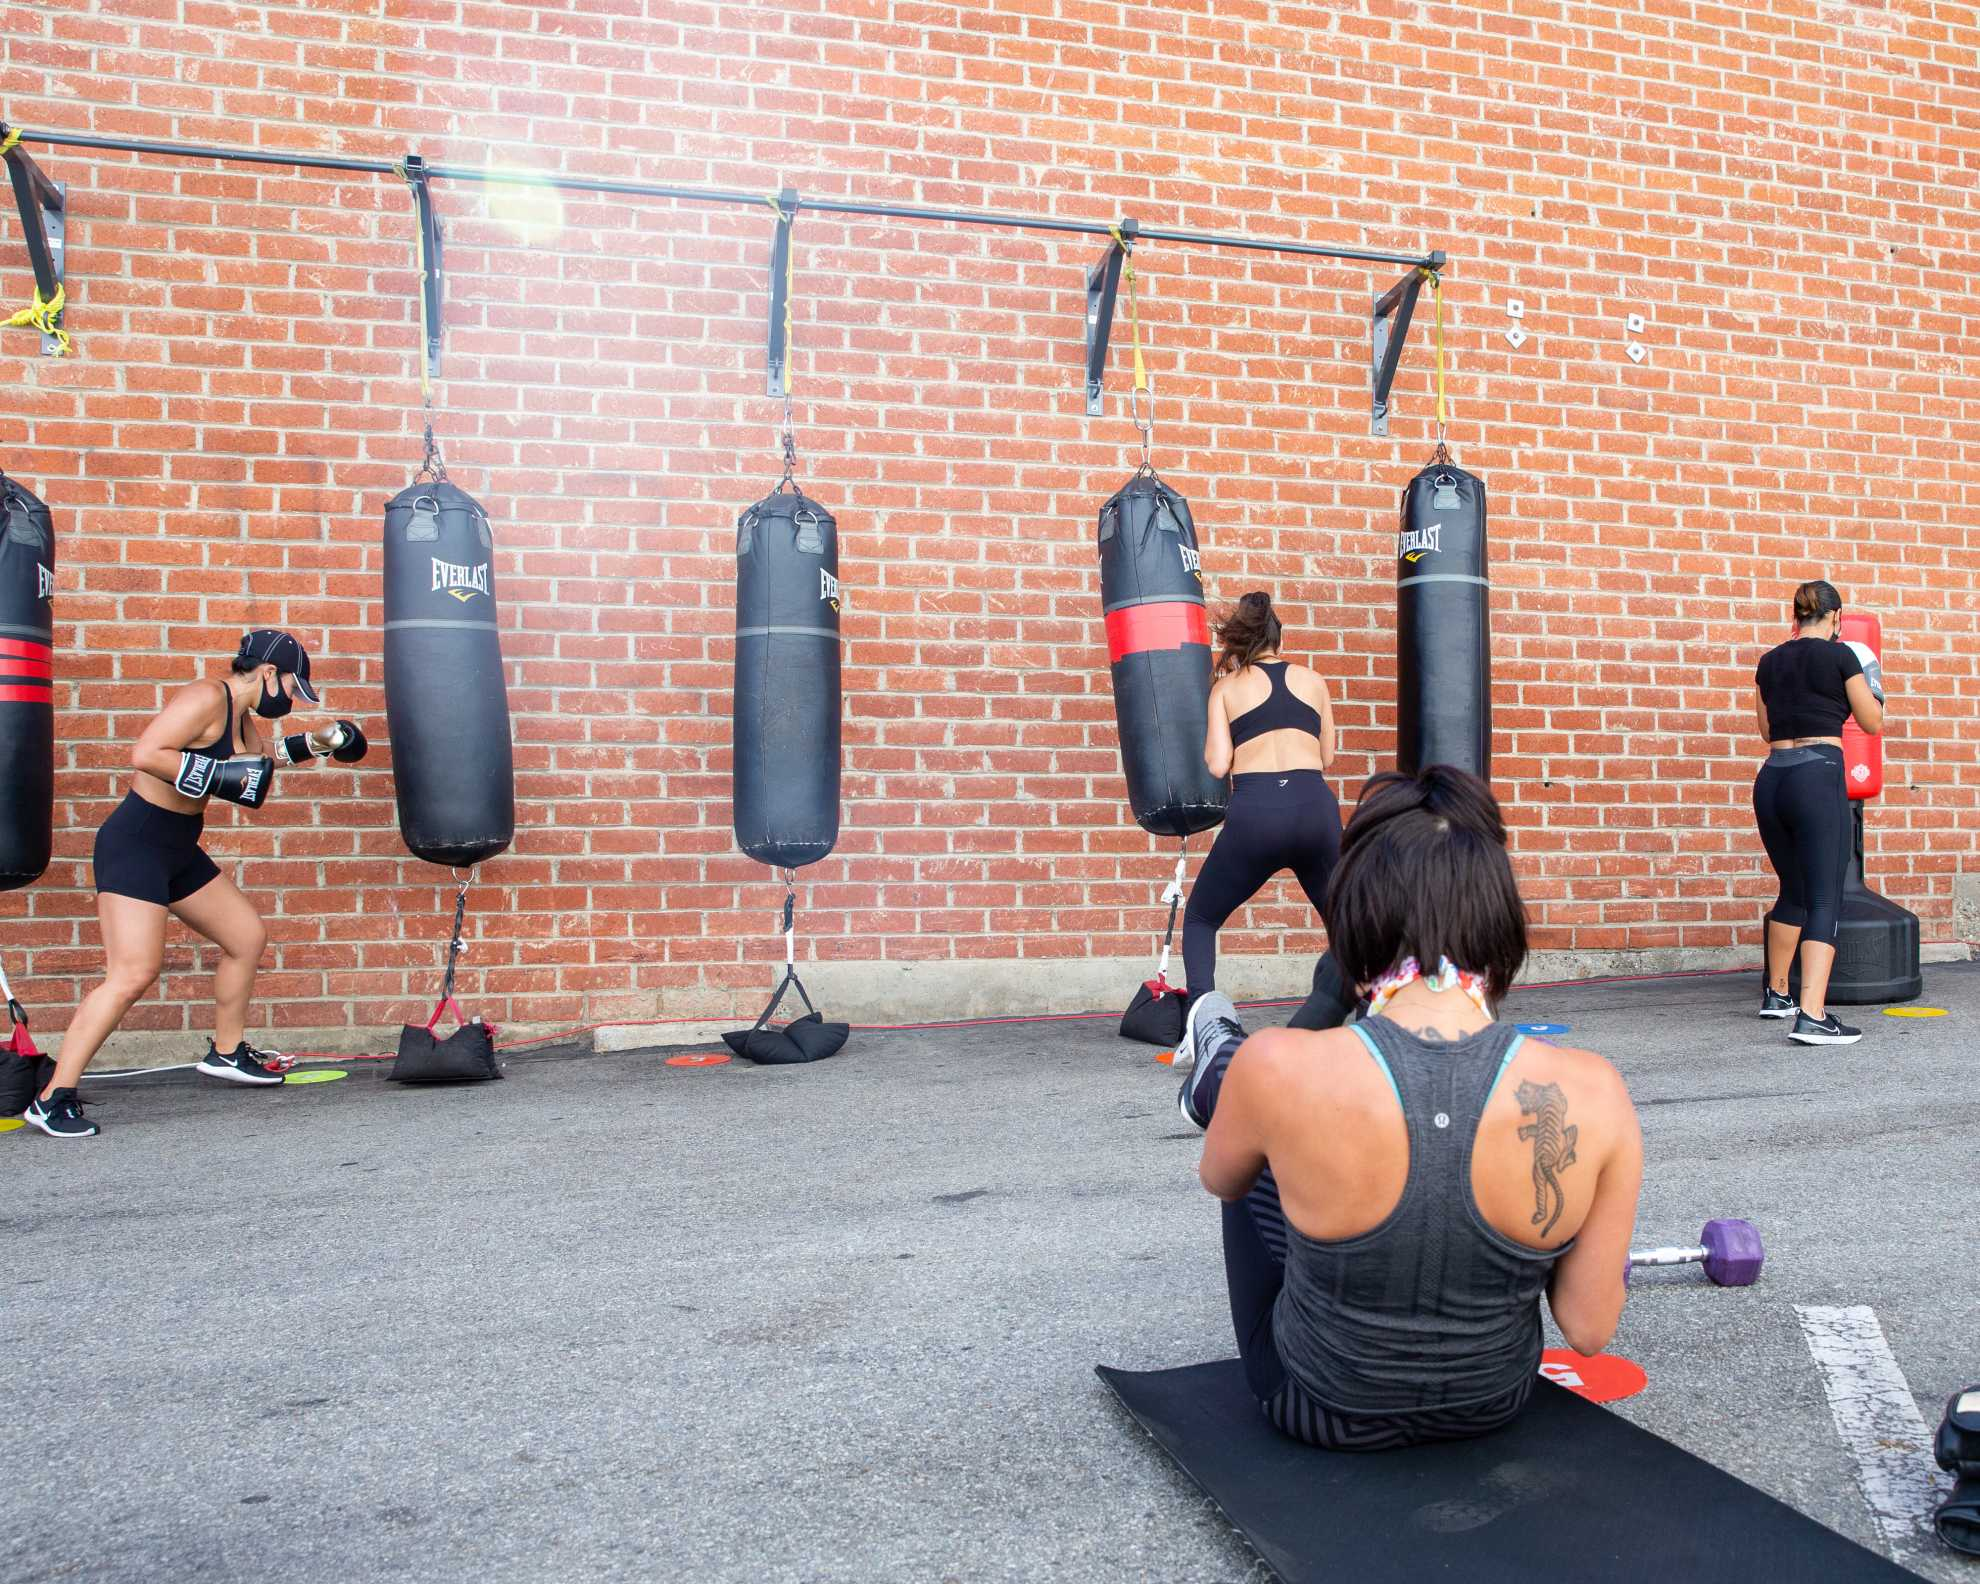 Lincoln Blvd. Santa Monica gym clients outside class boxing and training